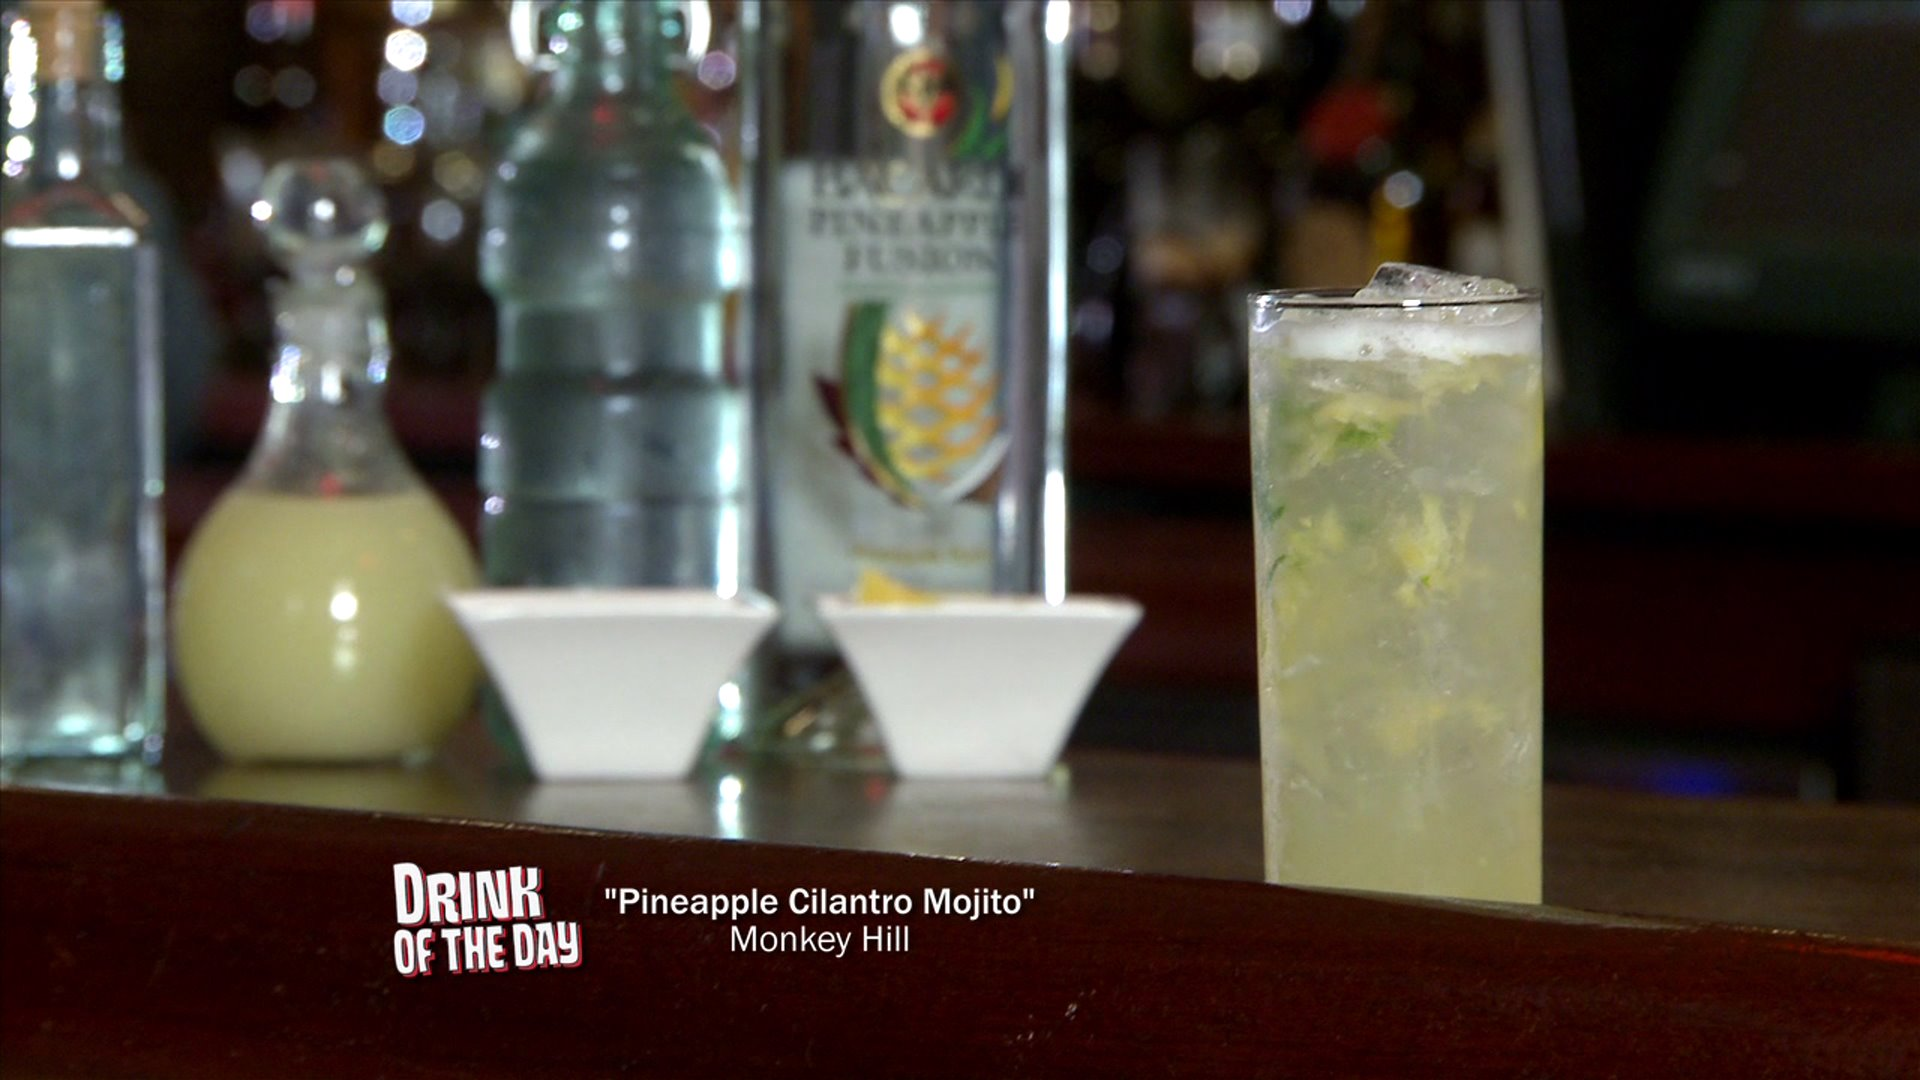 Drink of the Day: Pineapple Cilantro Mojito